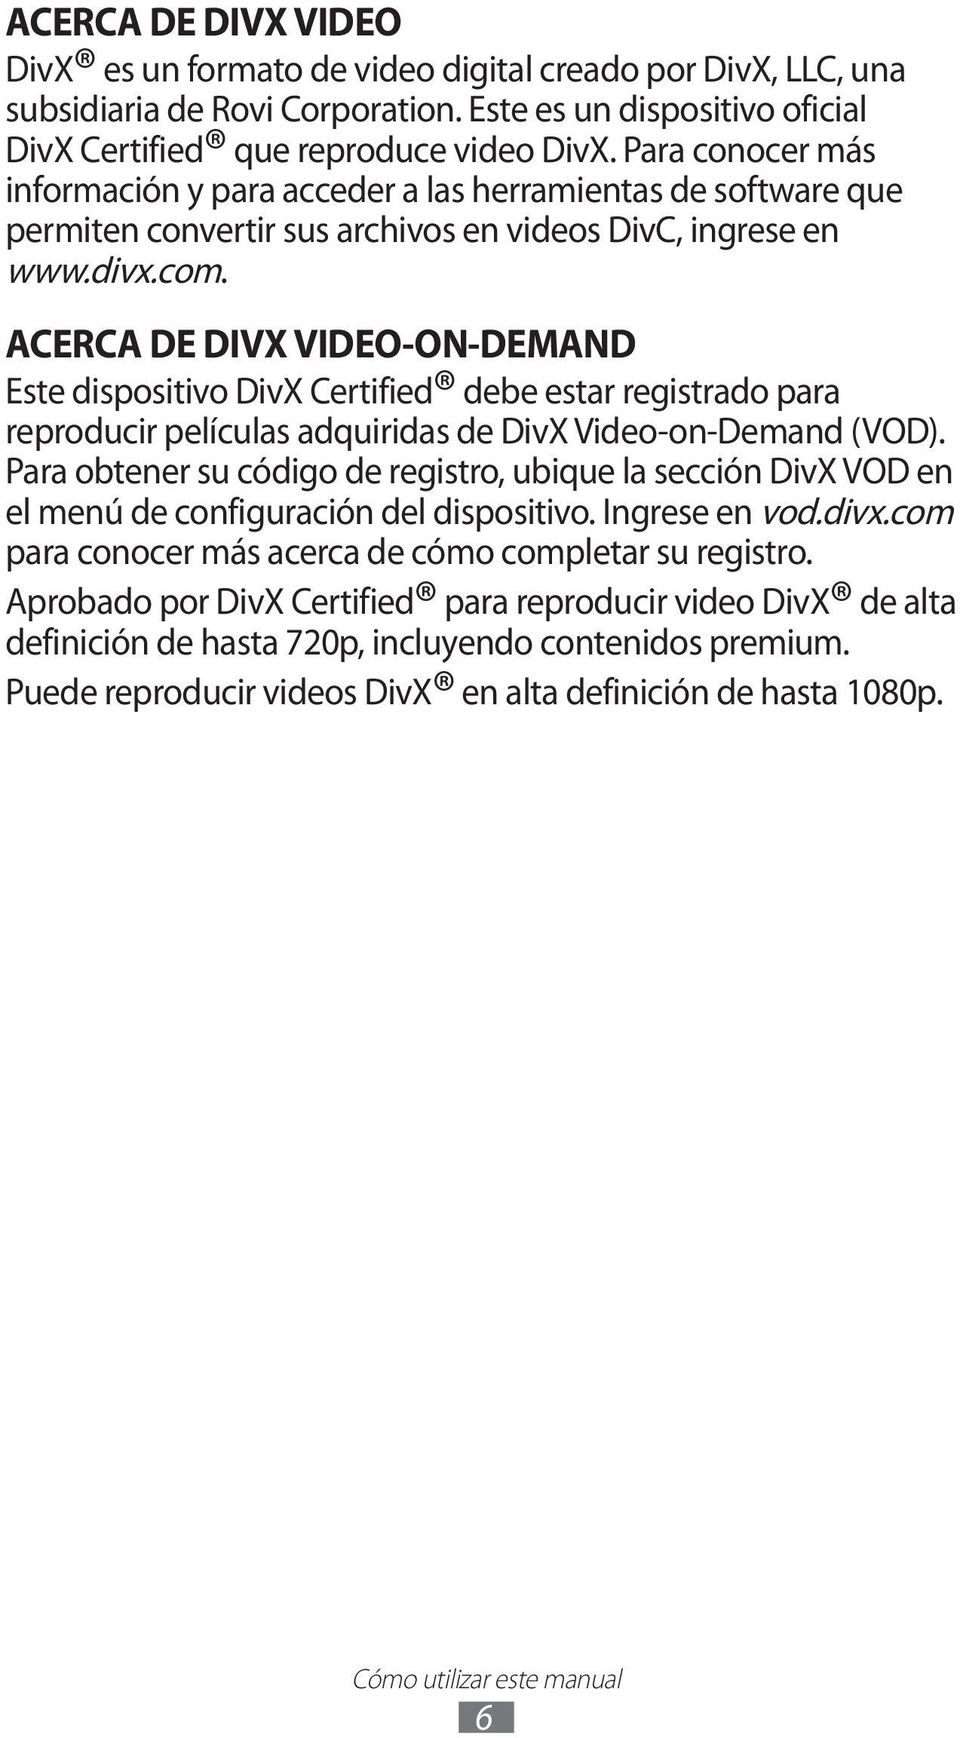 ACERCA DE DIVX VIDEO-ON-DEMAND Este dispositivo DivX Certified debe estar registrado para reproducir películas adquiridas de DivX Video-on-Demand (VOD).